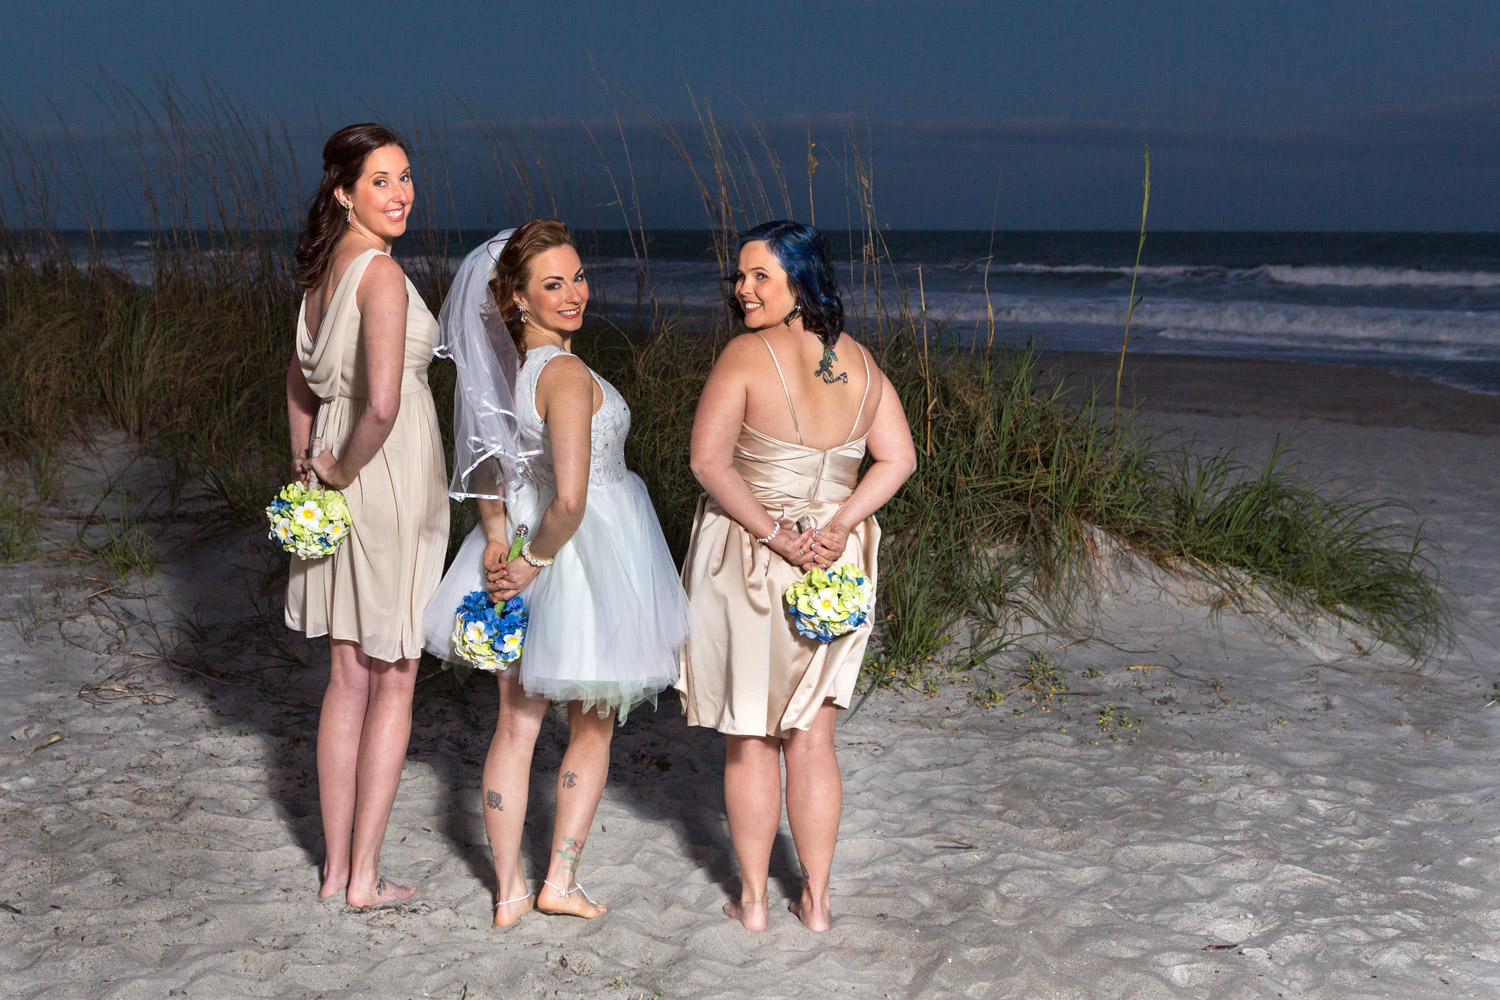 beach_wedding-1205-1.jpg